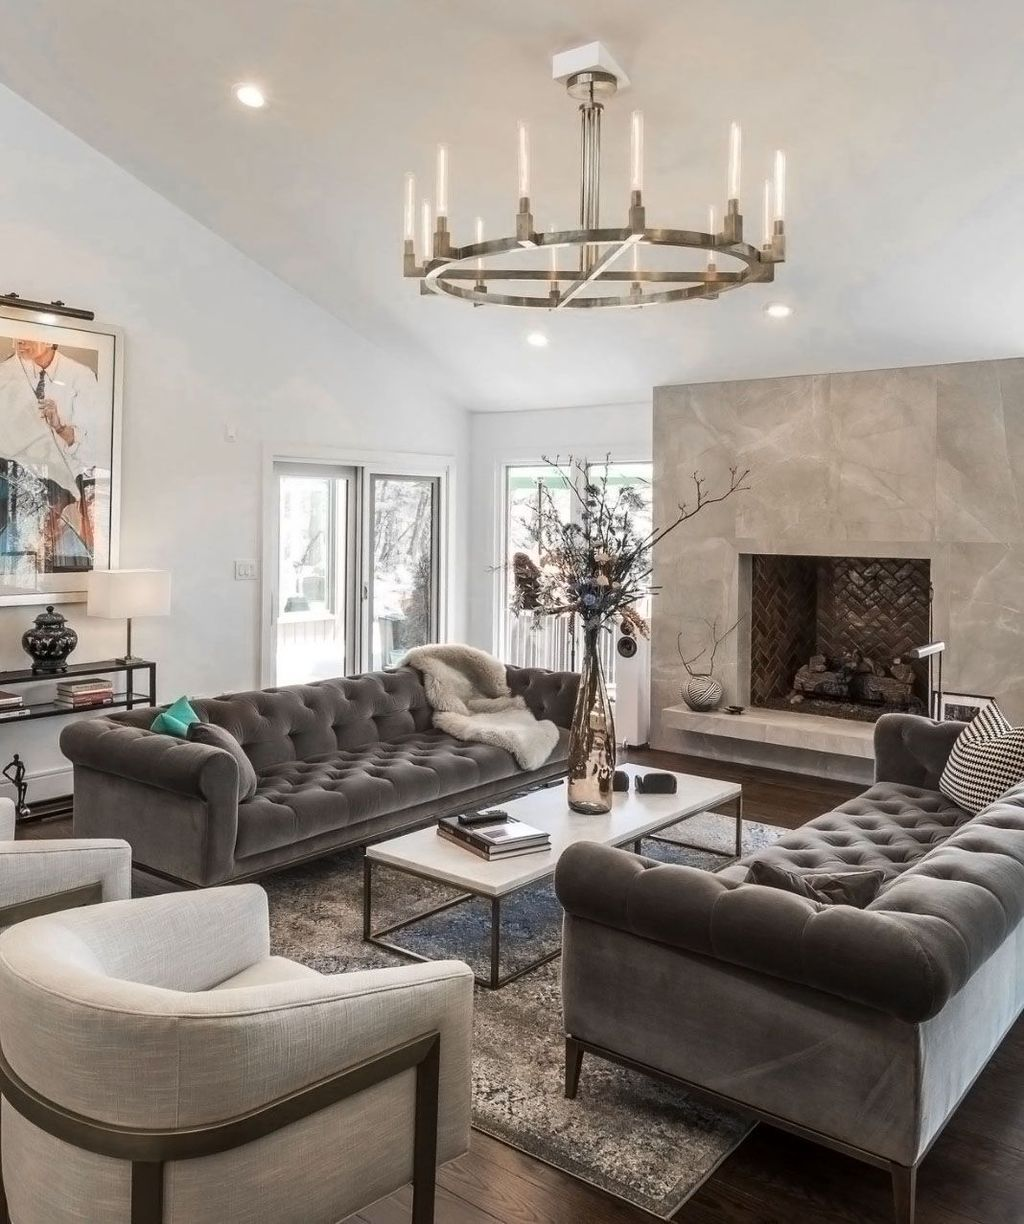 36 Stunning Chesterfield Sofa Ideas For Your Living Room Living Room Decor Gray Chesterfield Sofa Living Room Velvet Sofa Living Room